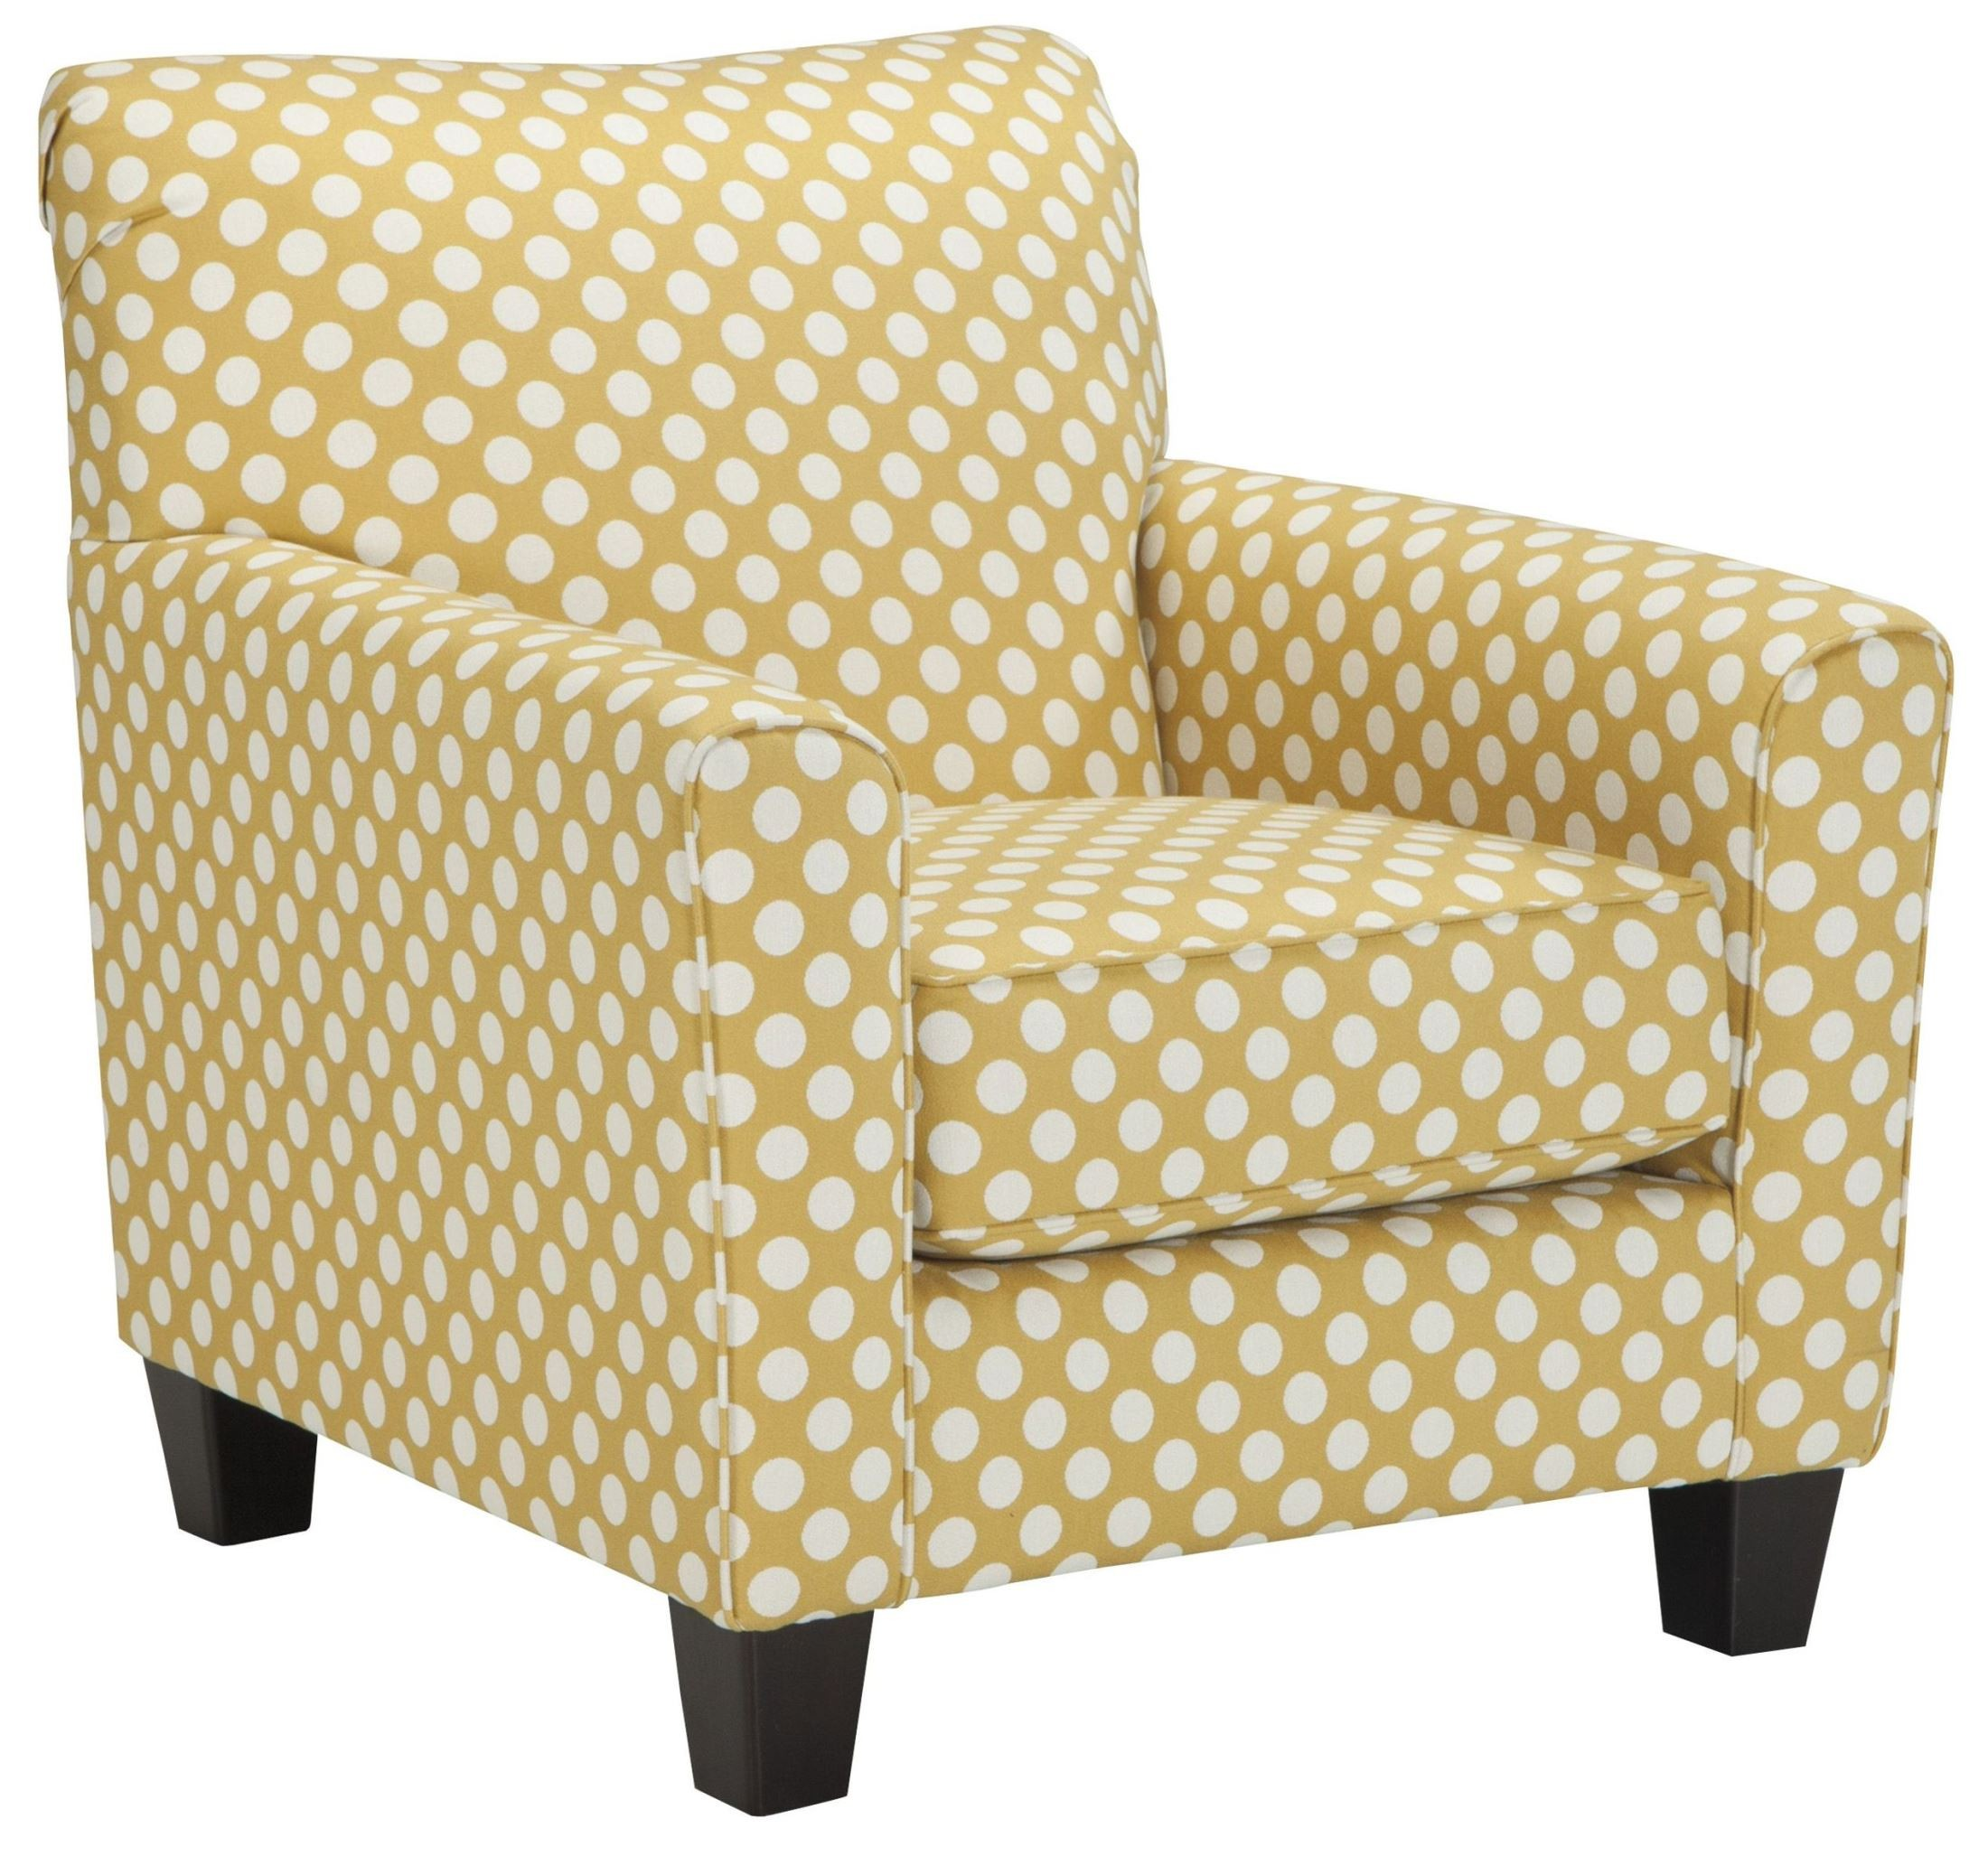 Brindon Yellow Accent Chair From Ashley 5390121